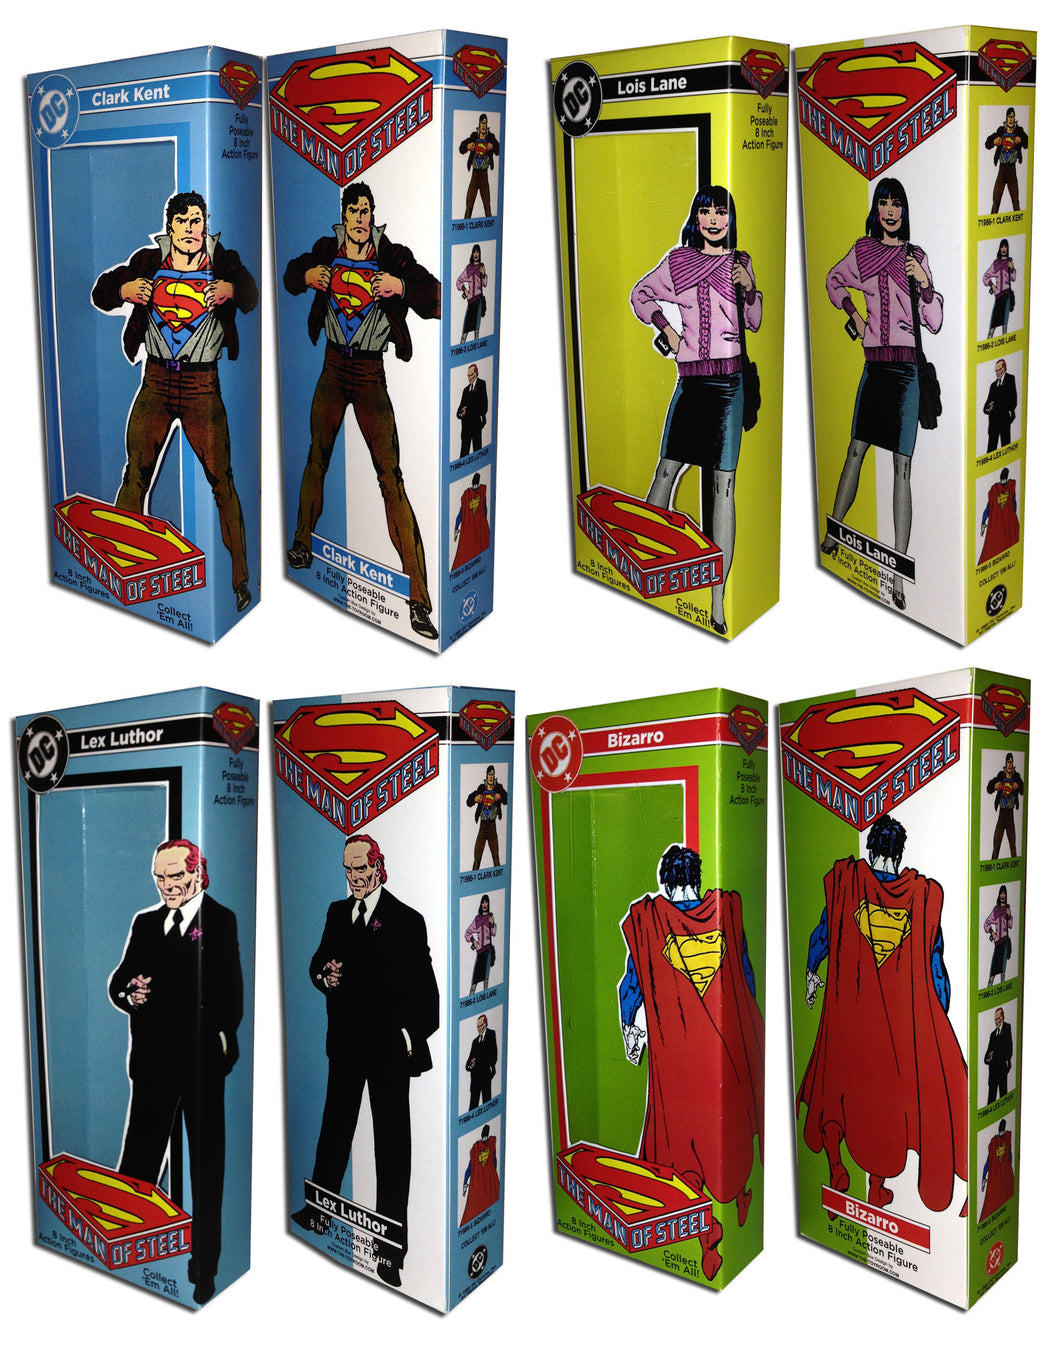 Mego Superman Boxes: Man of Steel